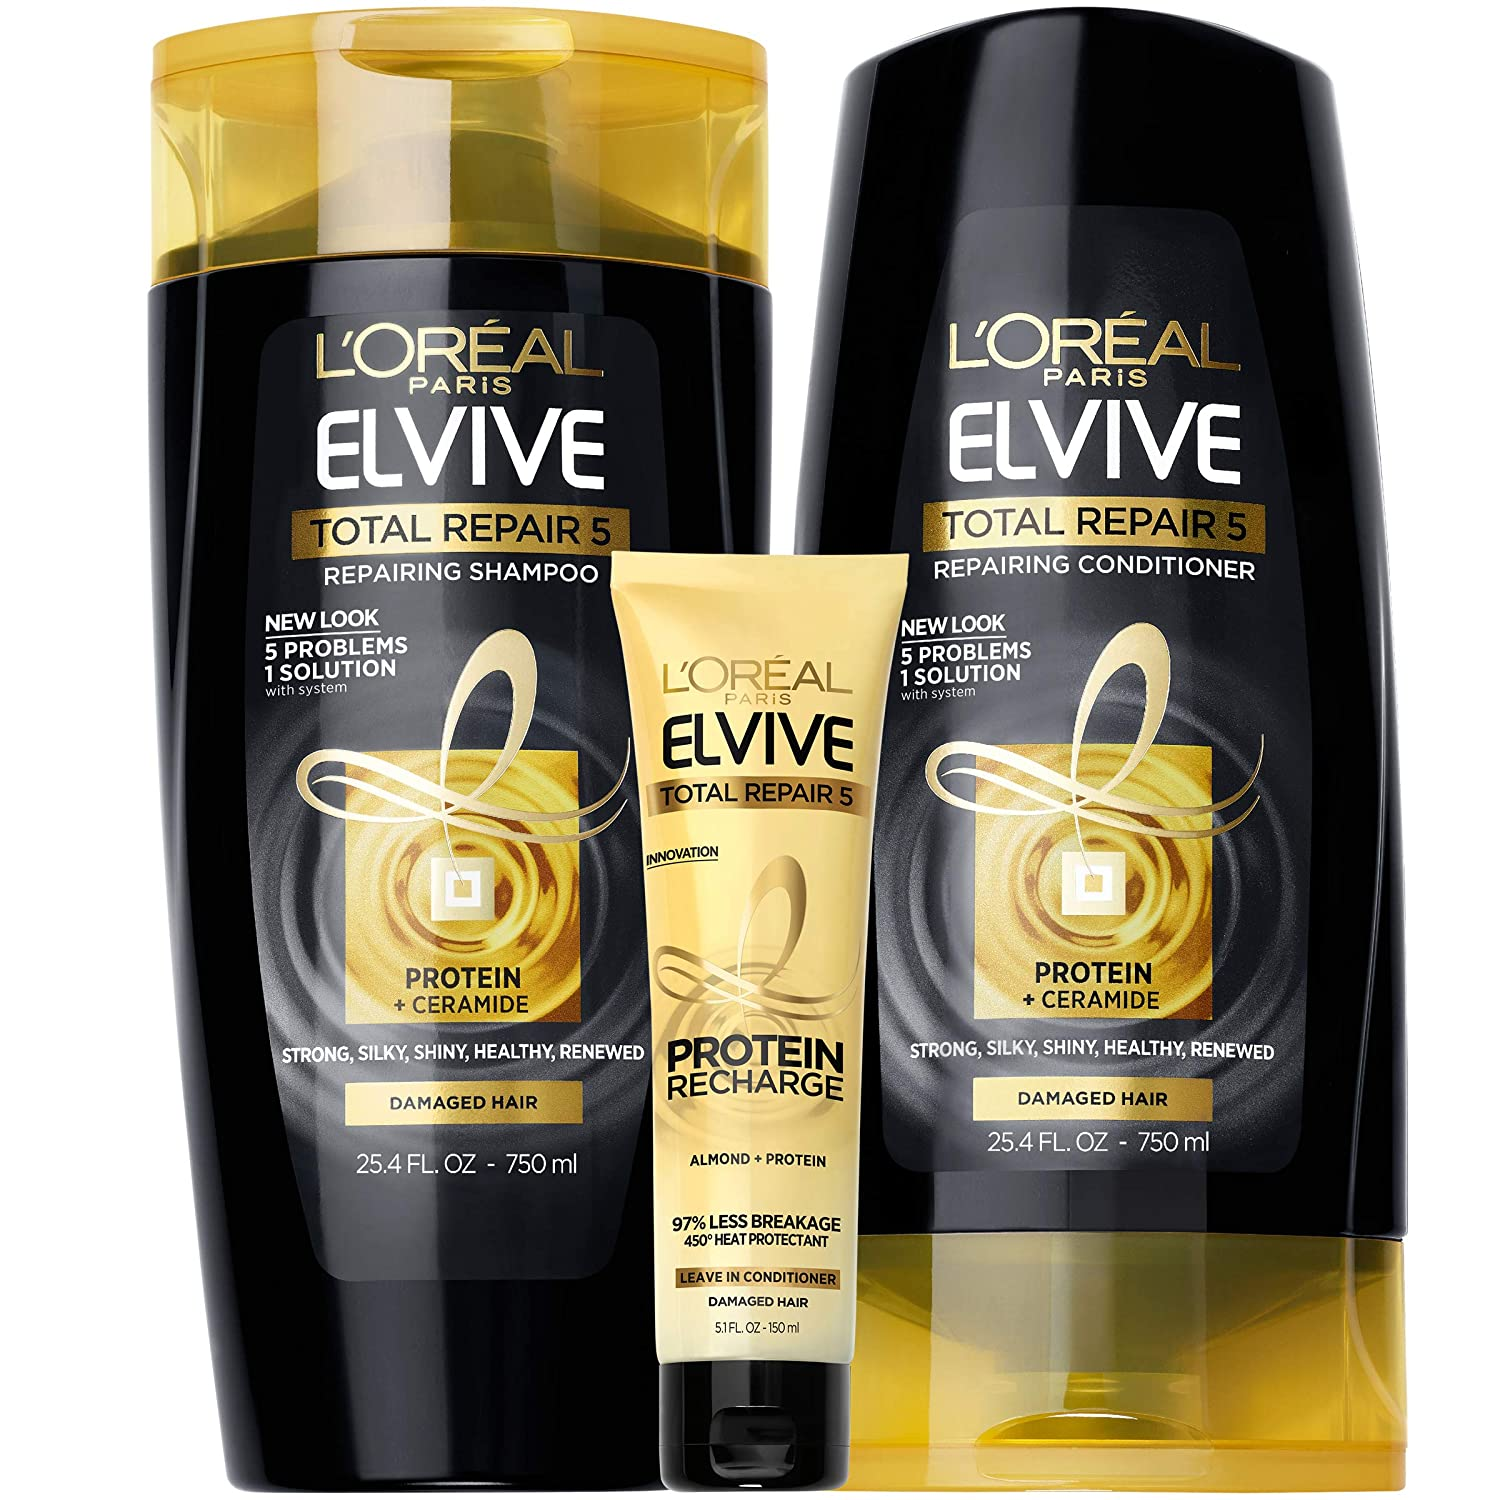 L'Oreal Paris Elvive TR5 Repairing Shampoo, Conditioner and Protein Recharge, for damaged hair, Shampoo and Conditioner with protein and ceramide for strong, silky, shiny, healthy, renewed hair, 1 kit